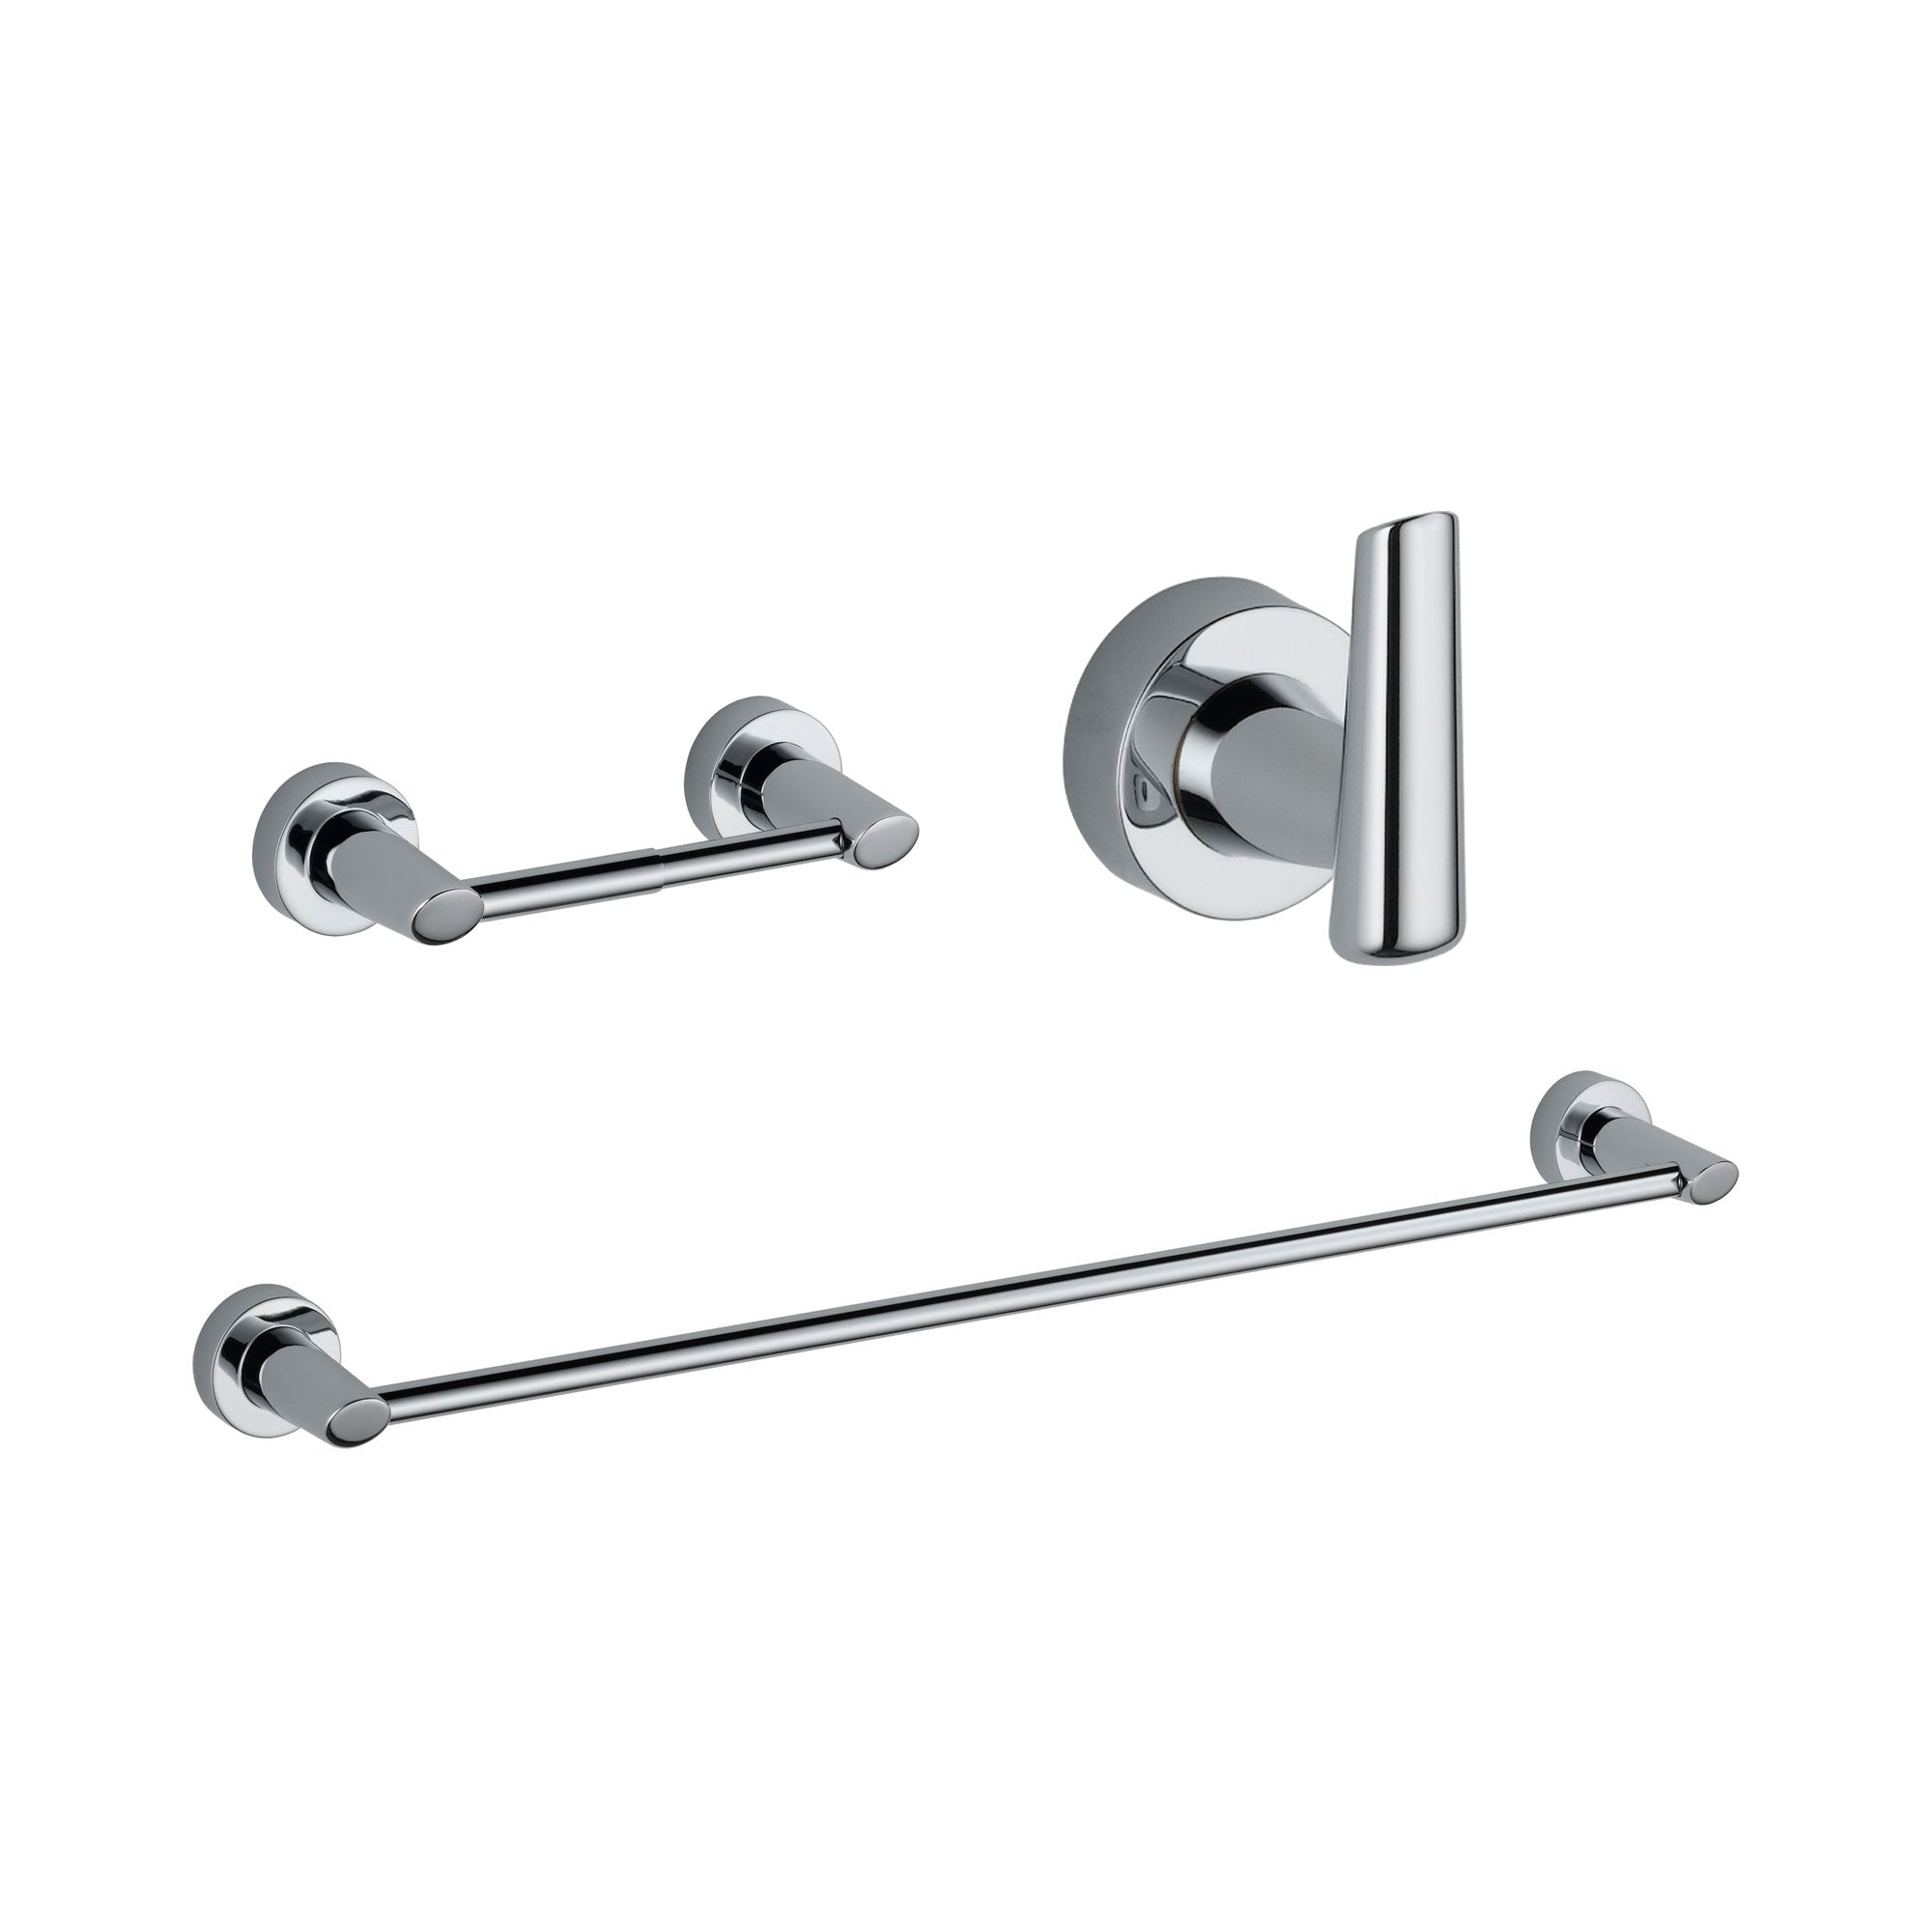 "Delta Compel Chrome BASICS Bathroom Accessory Set Includes: 24"" Towel Bar, Toilet Paper Holder, and Robe Hook D10071AP"